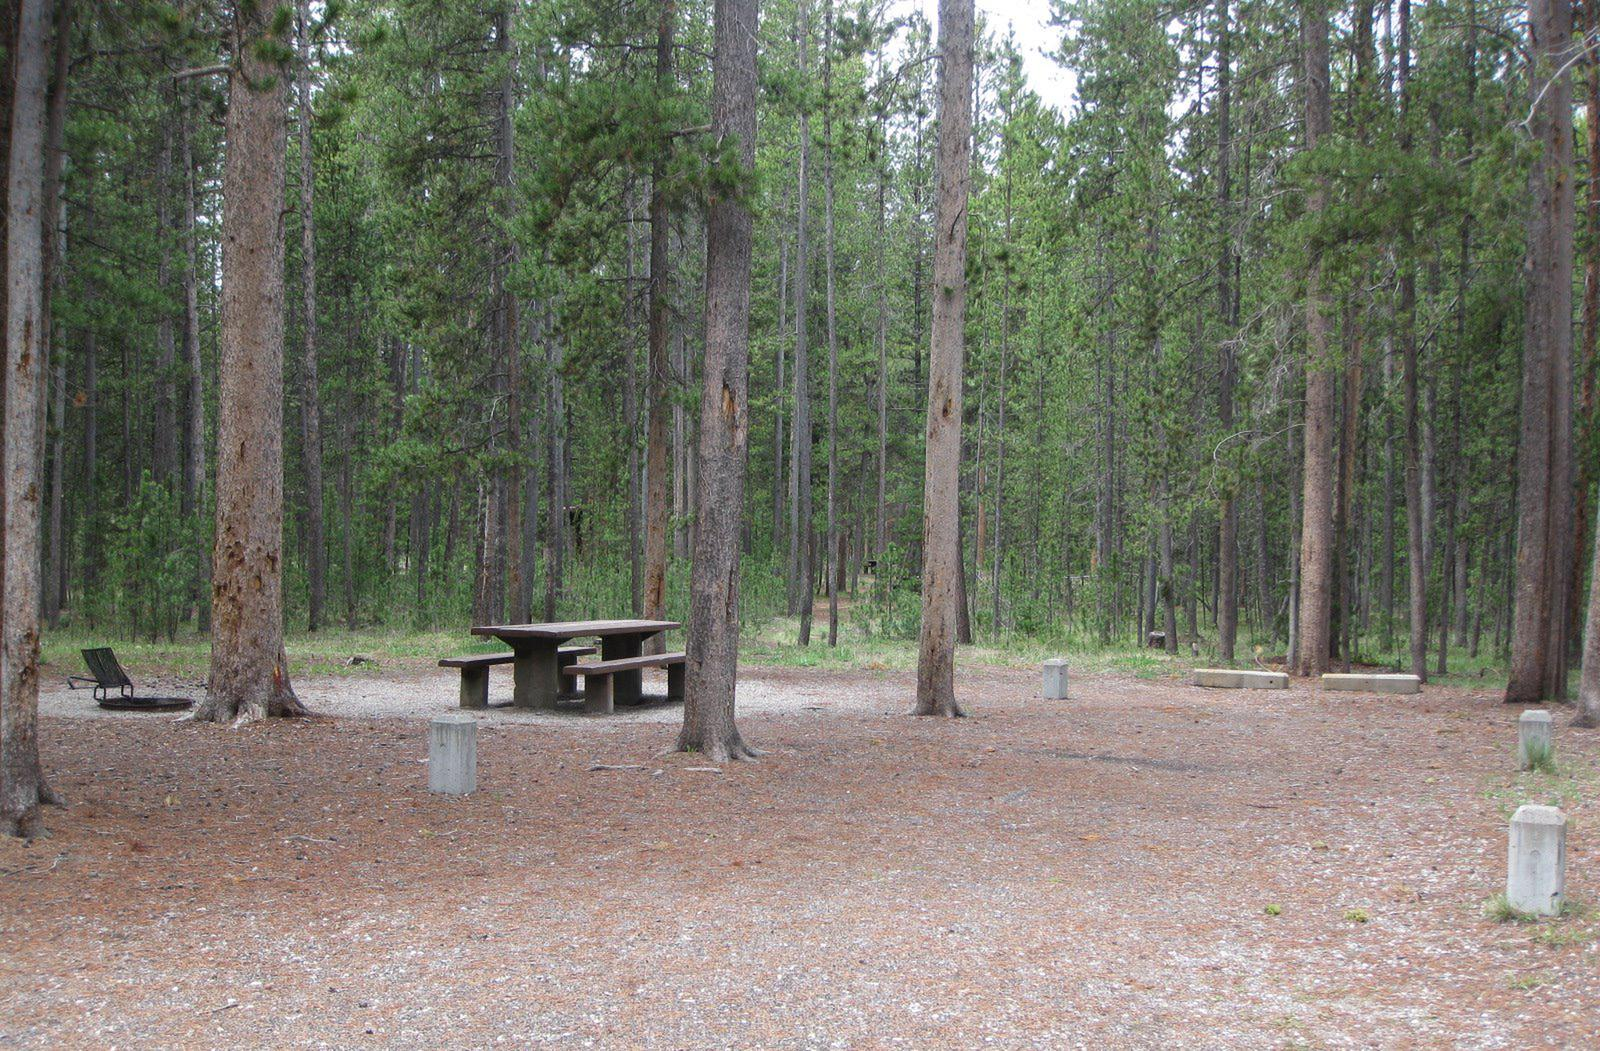 Site A5, surrounded by pine trees, picnic table & fire ringSite A5